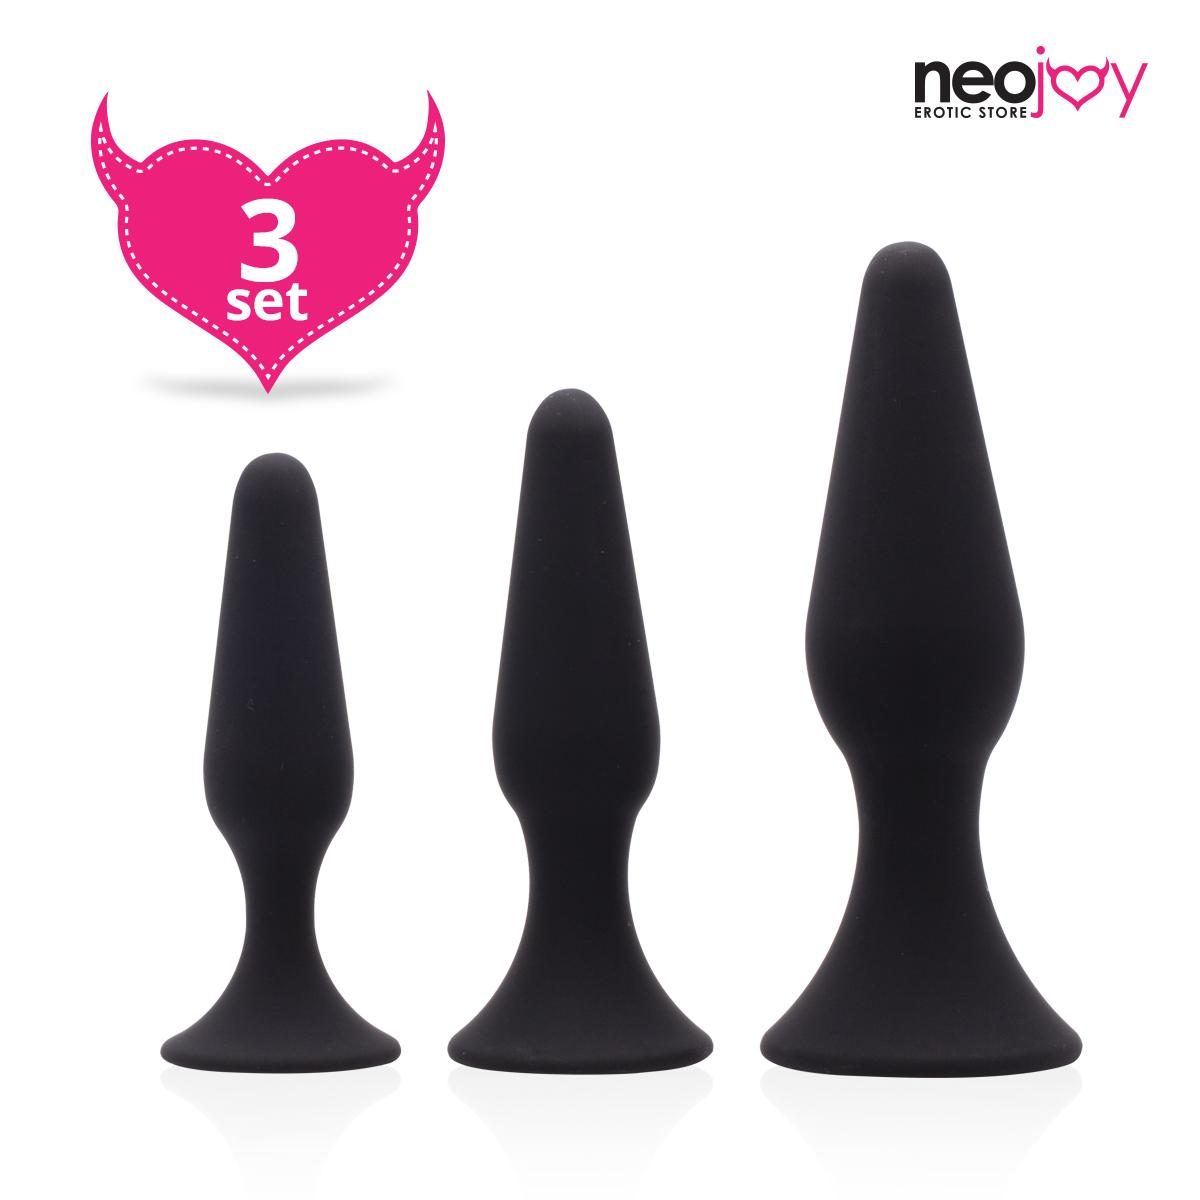 Neojoy Triple Butt Plug set - 3 sizes